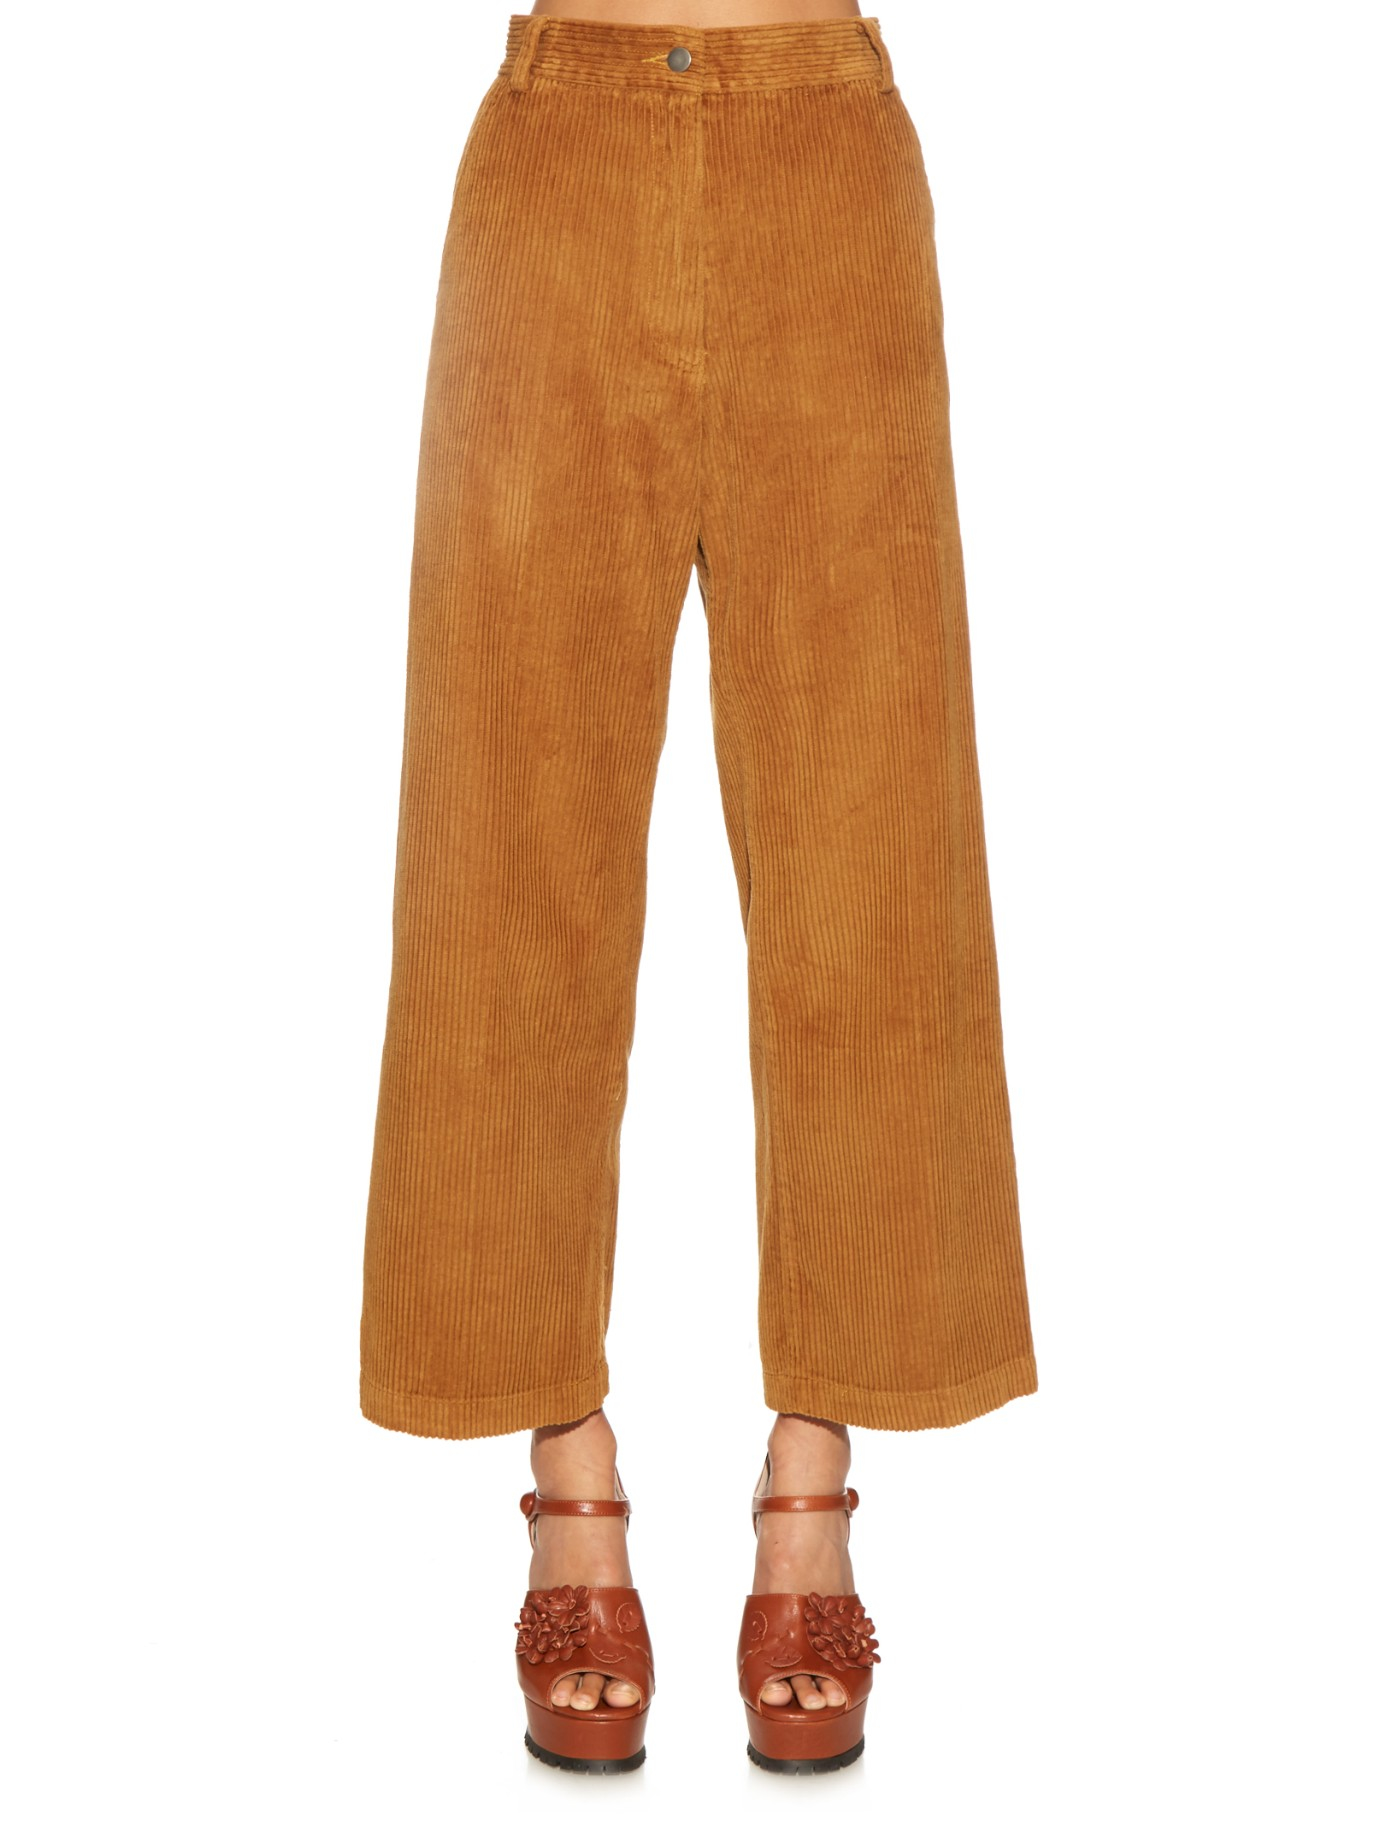 Rachel comey Bishop Wide Wale Corduroy Trousers in Brown | Lyst